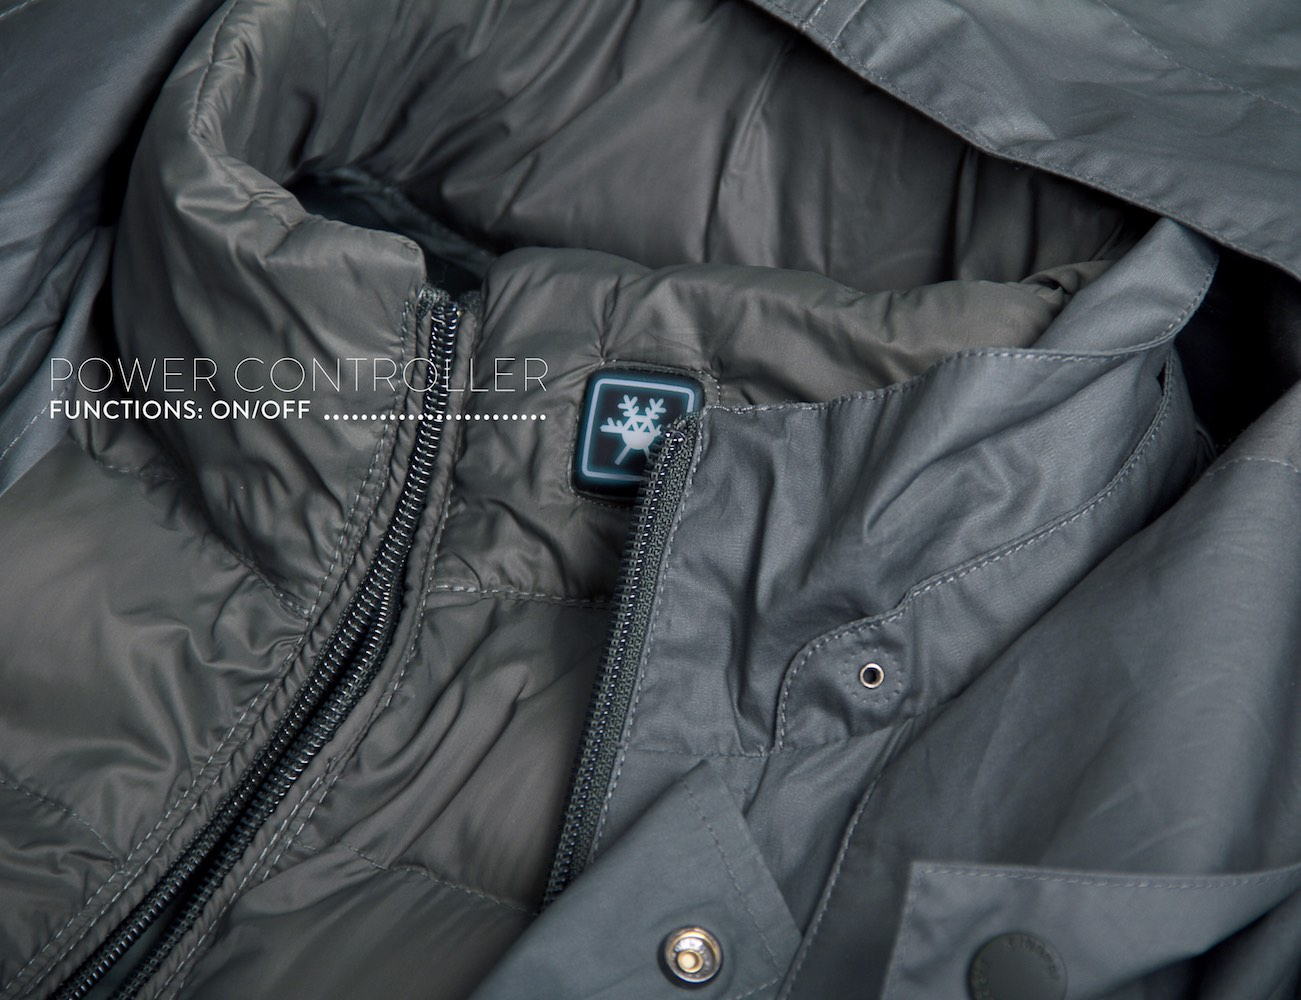 The+World%26%238217%3Bs+First+Heated+Jacket+Managed+By+Smartphone